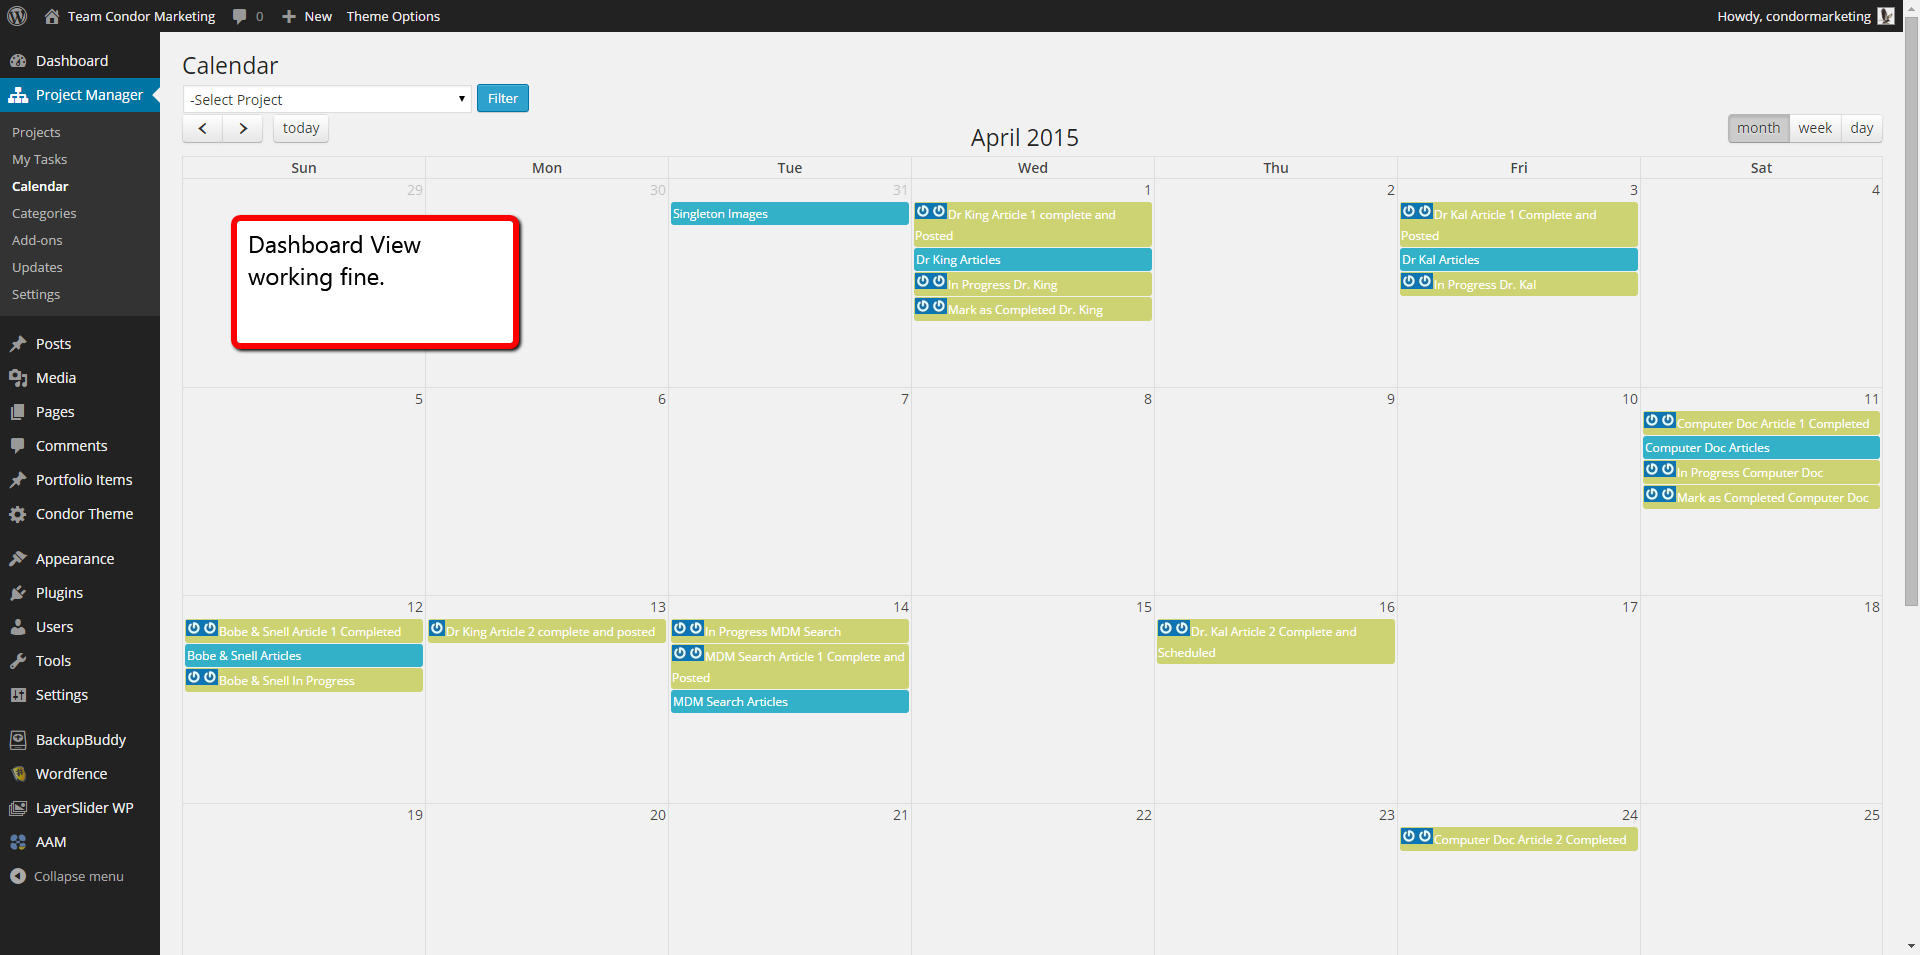 Dashboard View of Calendar